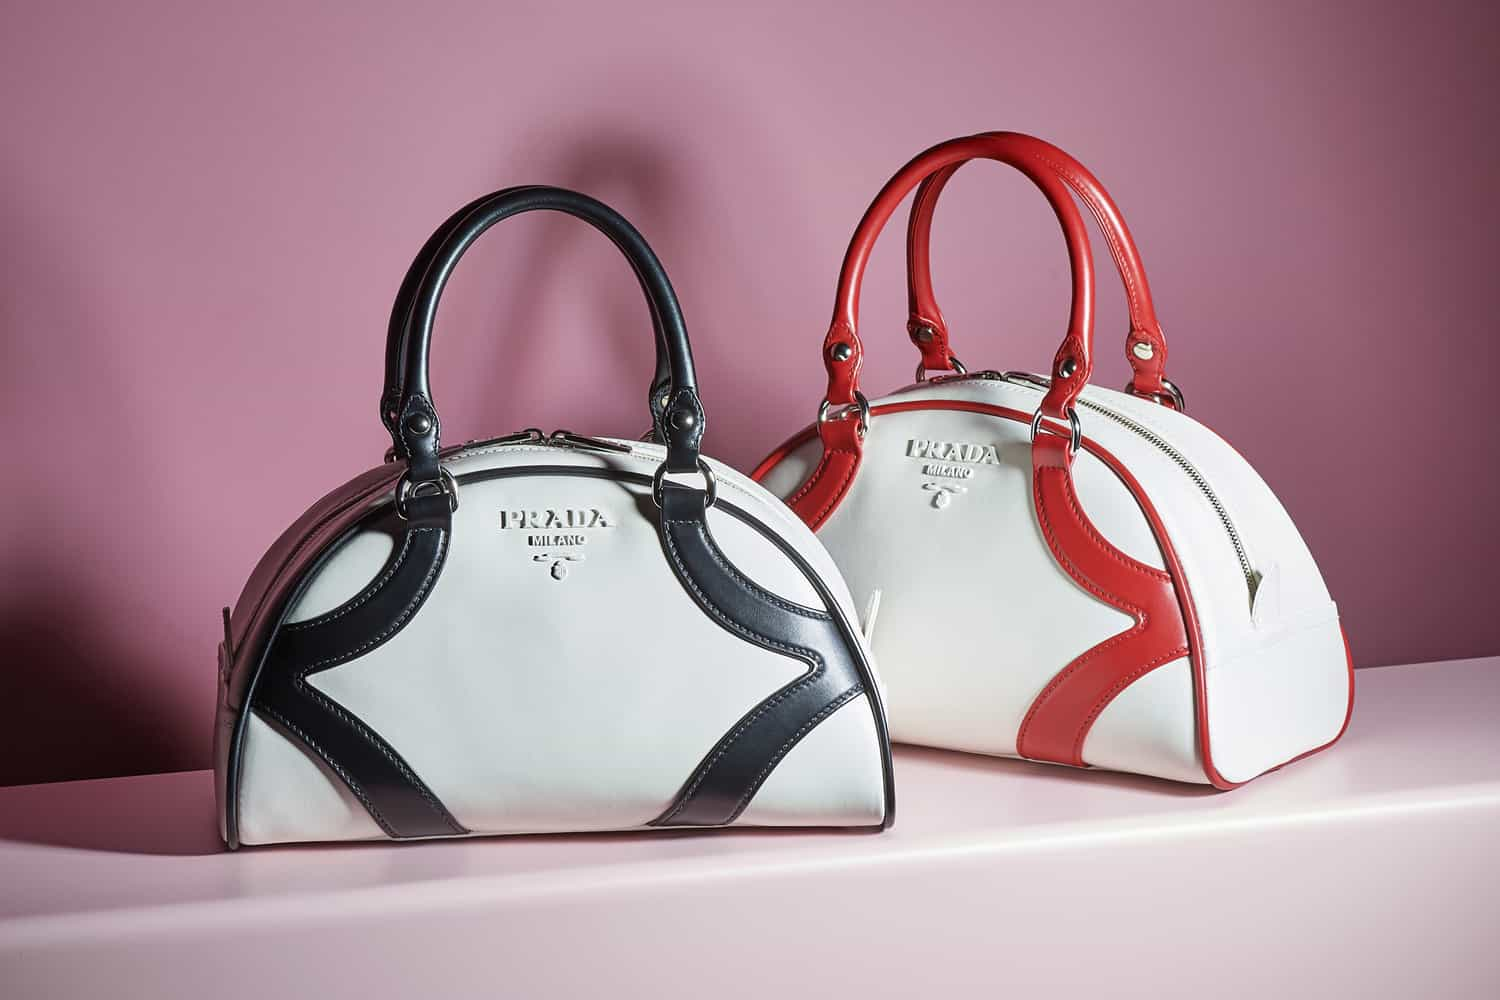 088add0baeec For Resort 2020 Miuccia Prada took a trip down memory lane  she reissued  the Prada Bowling Bag in honor of its 20th anniversary! Eagle eye fans will  notice ...